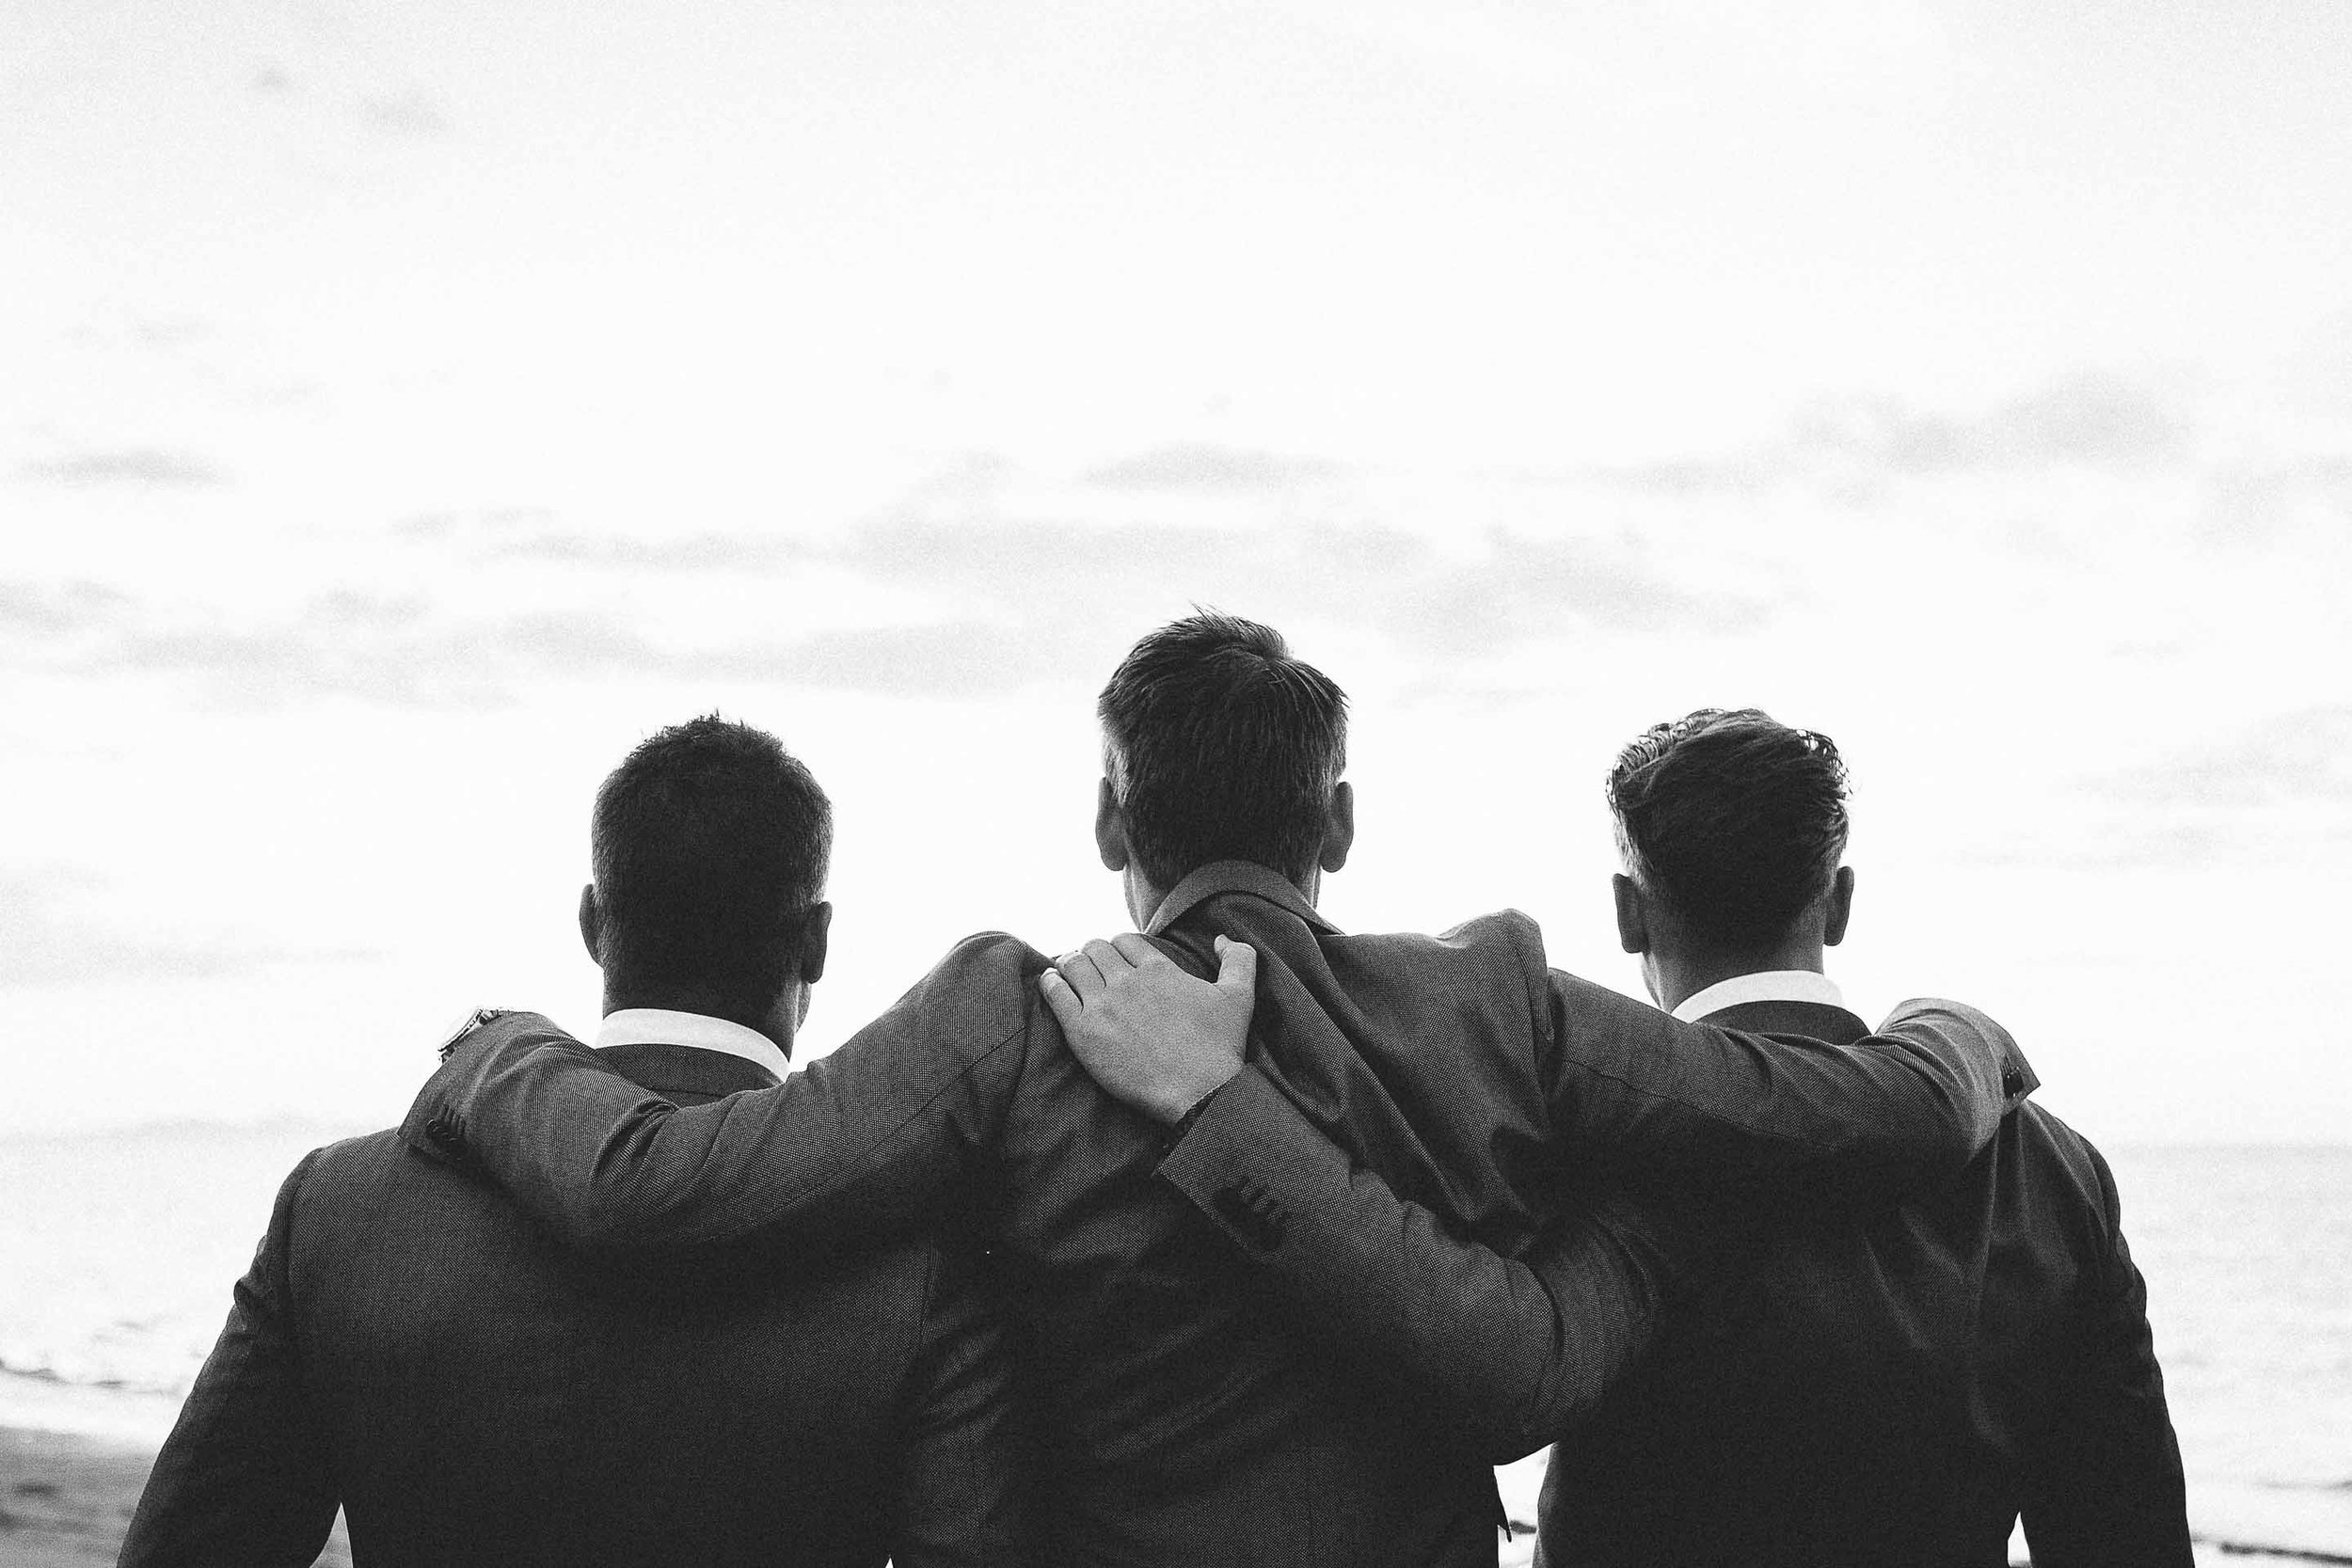 Fiji Groom and Groomsmen enjoy a friendly moment to take in the days emotions.